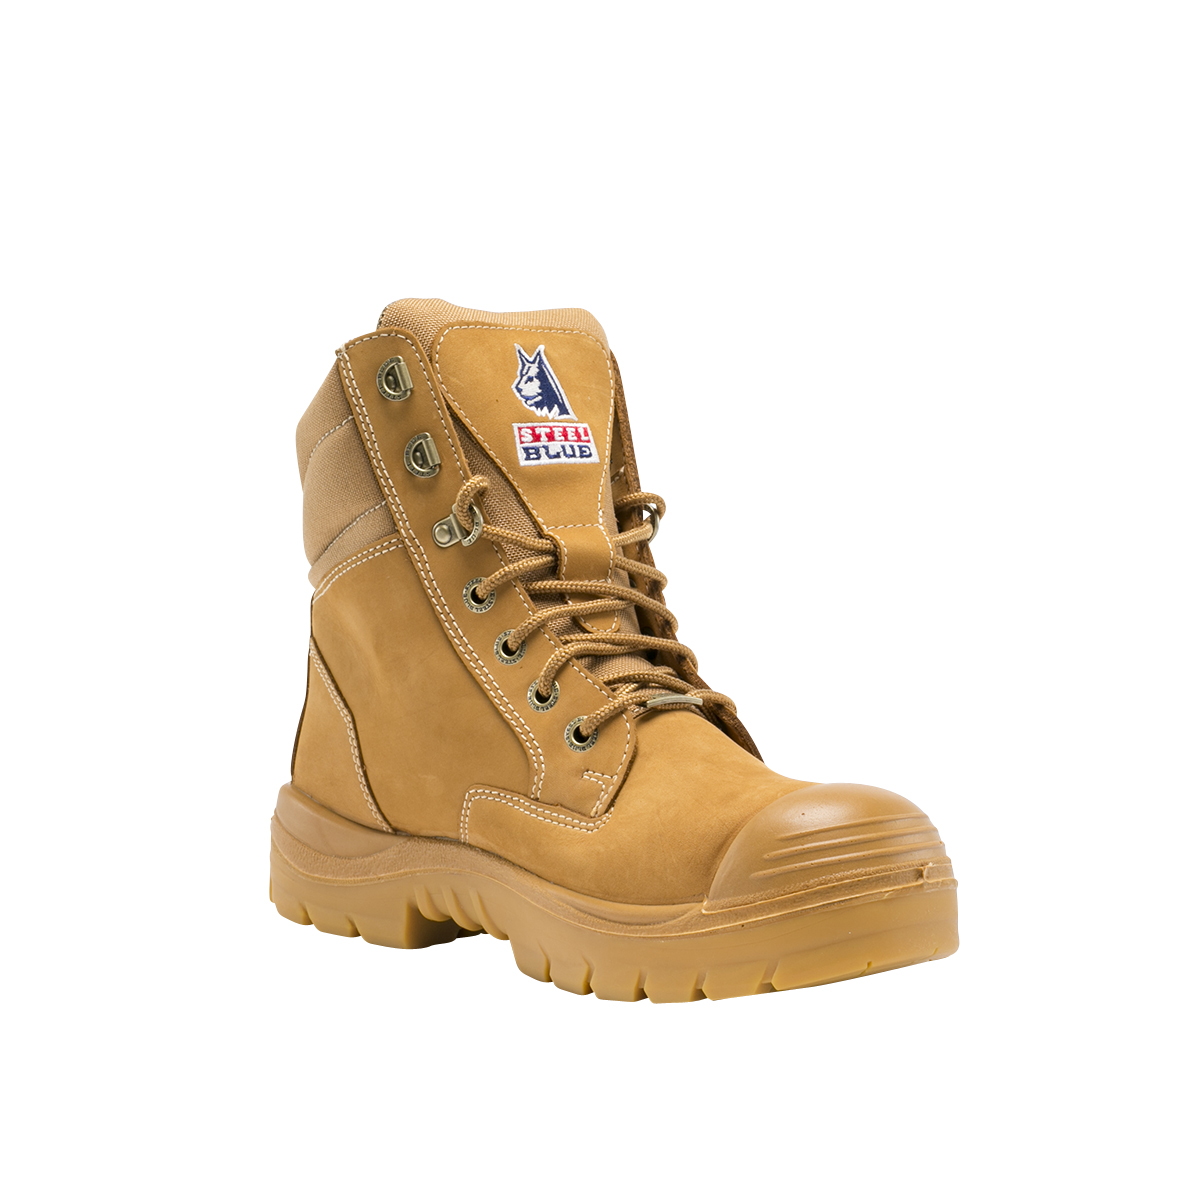 luxuriant in design bottom price the sale of shoes STEEL BLUE 342630 - Workboot Warehouse safety footwear work boots